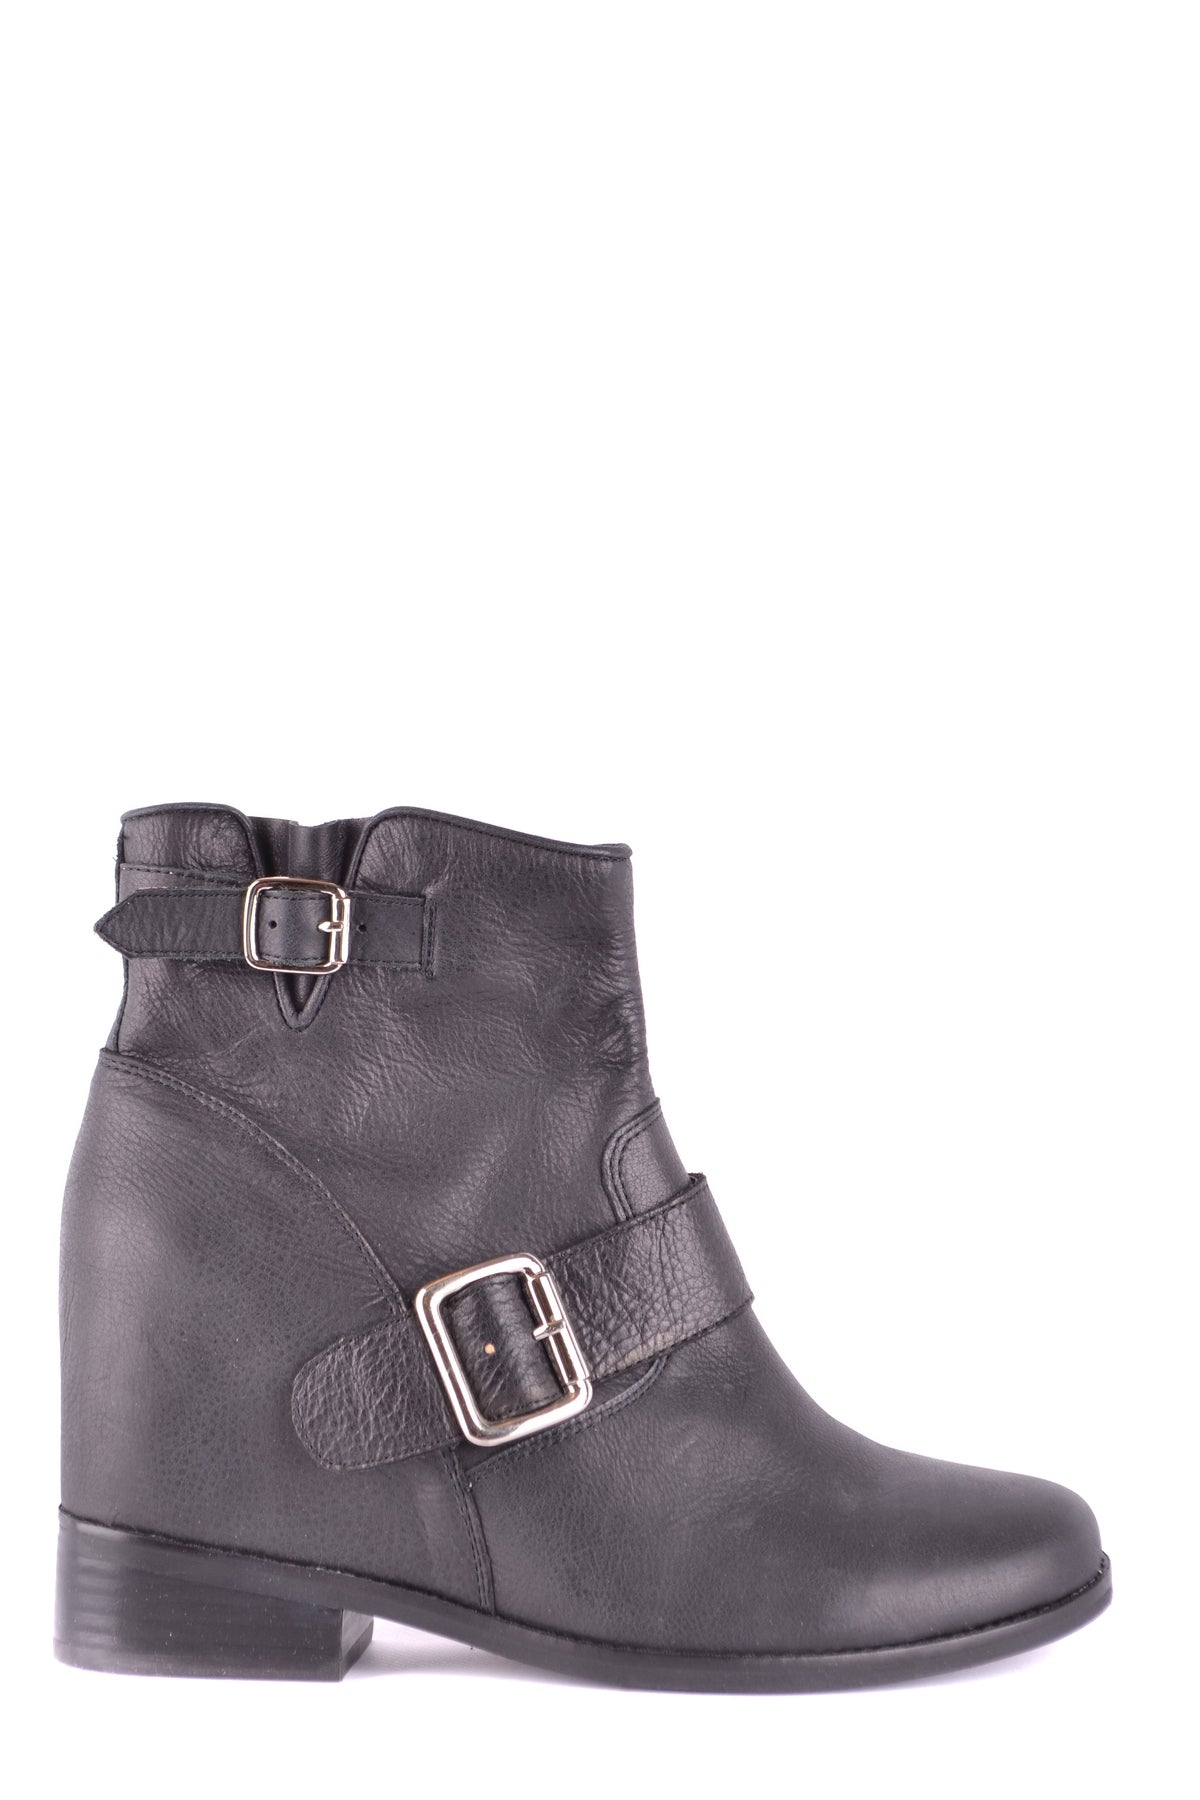 Shoes Jeffrey Campbell-Bootie - WOMAN-39-Product Details Type Of Accessory: ShoesTerms: New With LabelYear: 2017Main Color: BlackSeason: Fall / WinterMade In: ChinaSize: EuGender: WomanComposition: Leather 100%-Keyomi-Sook